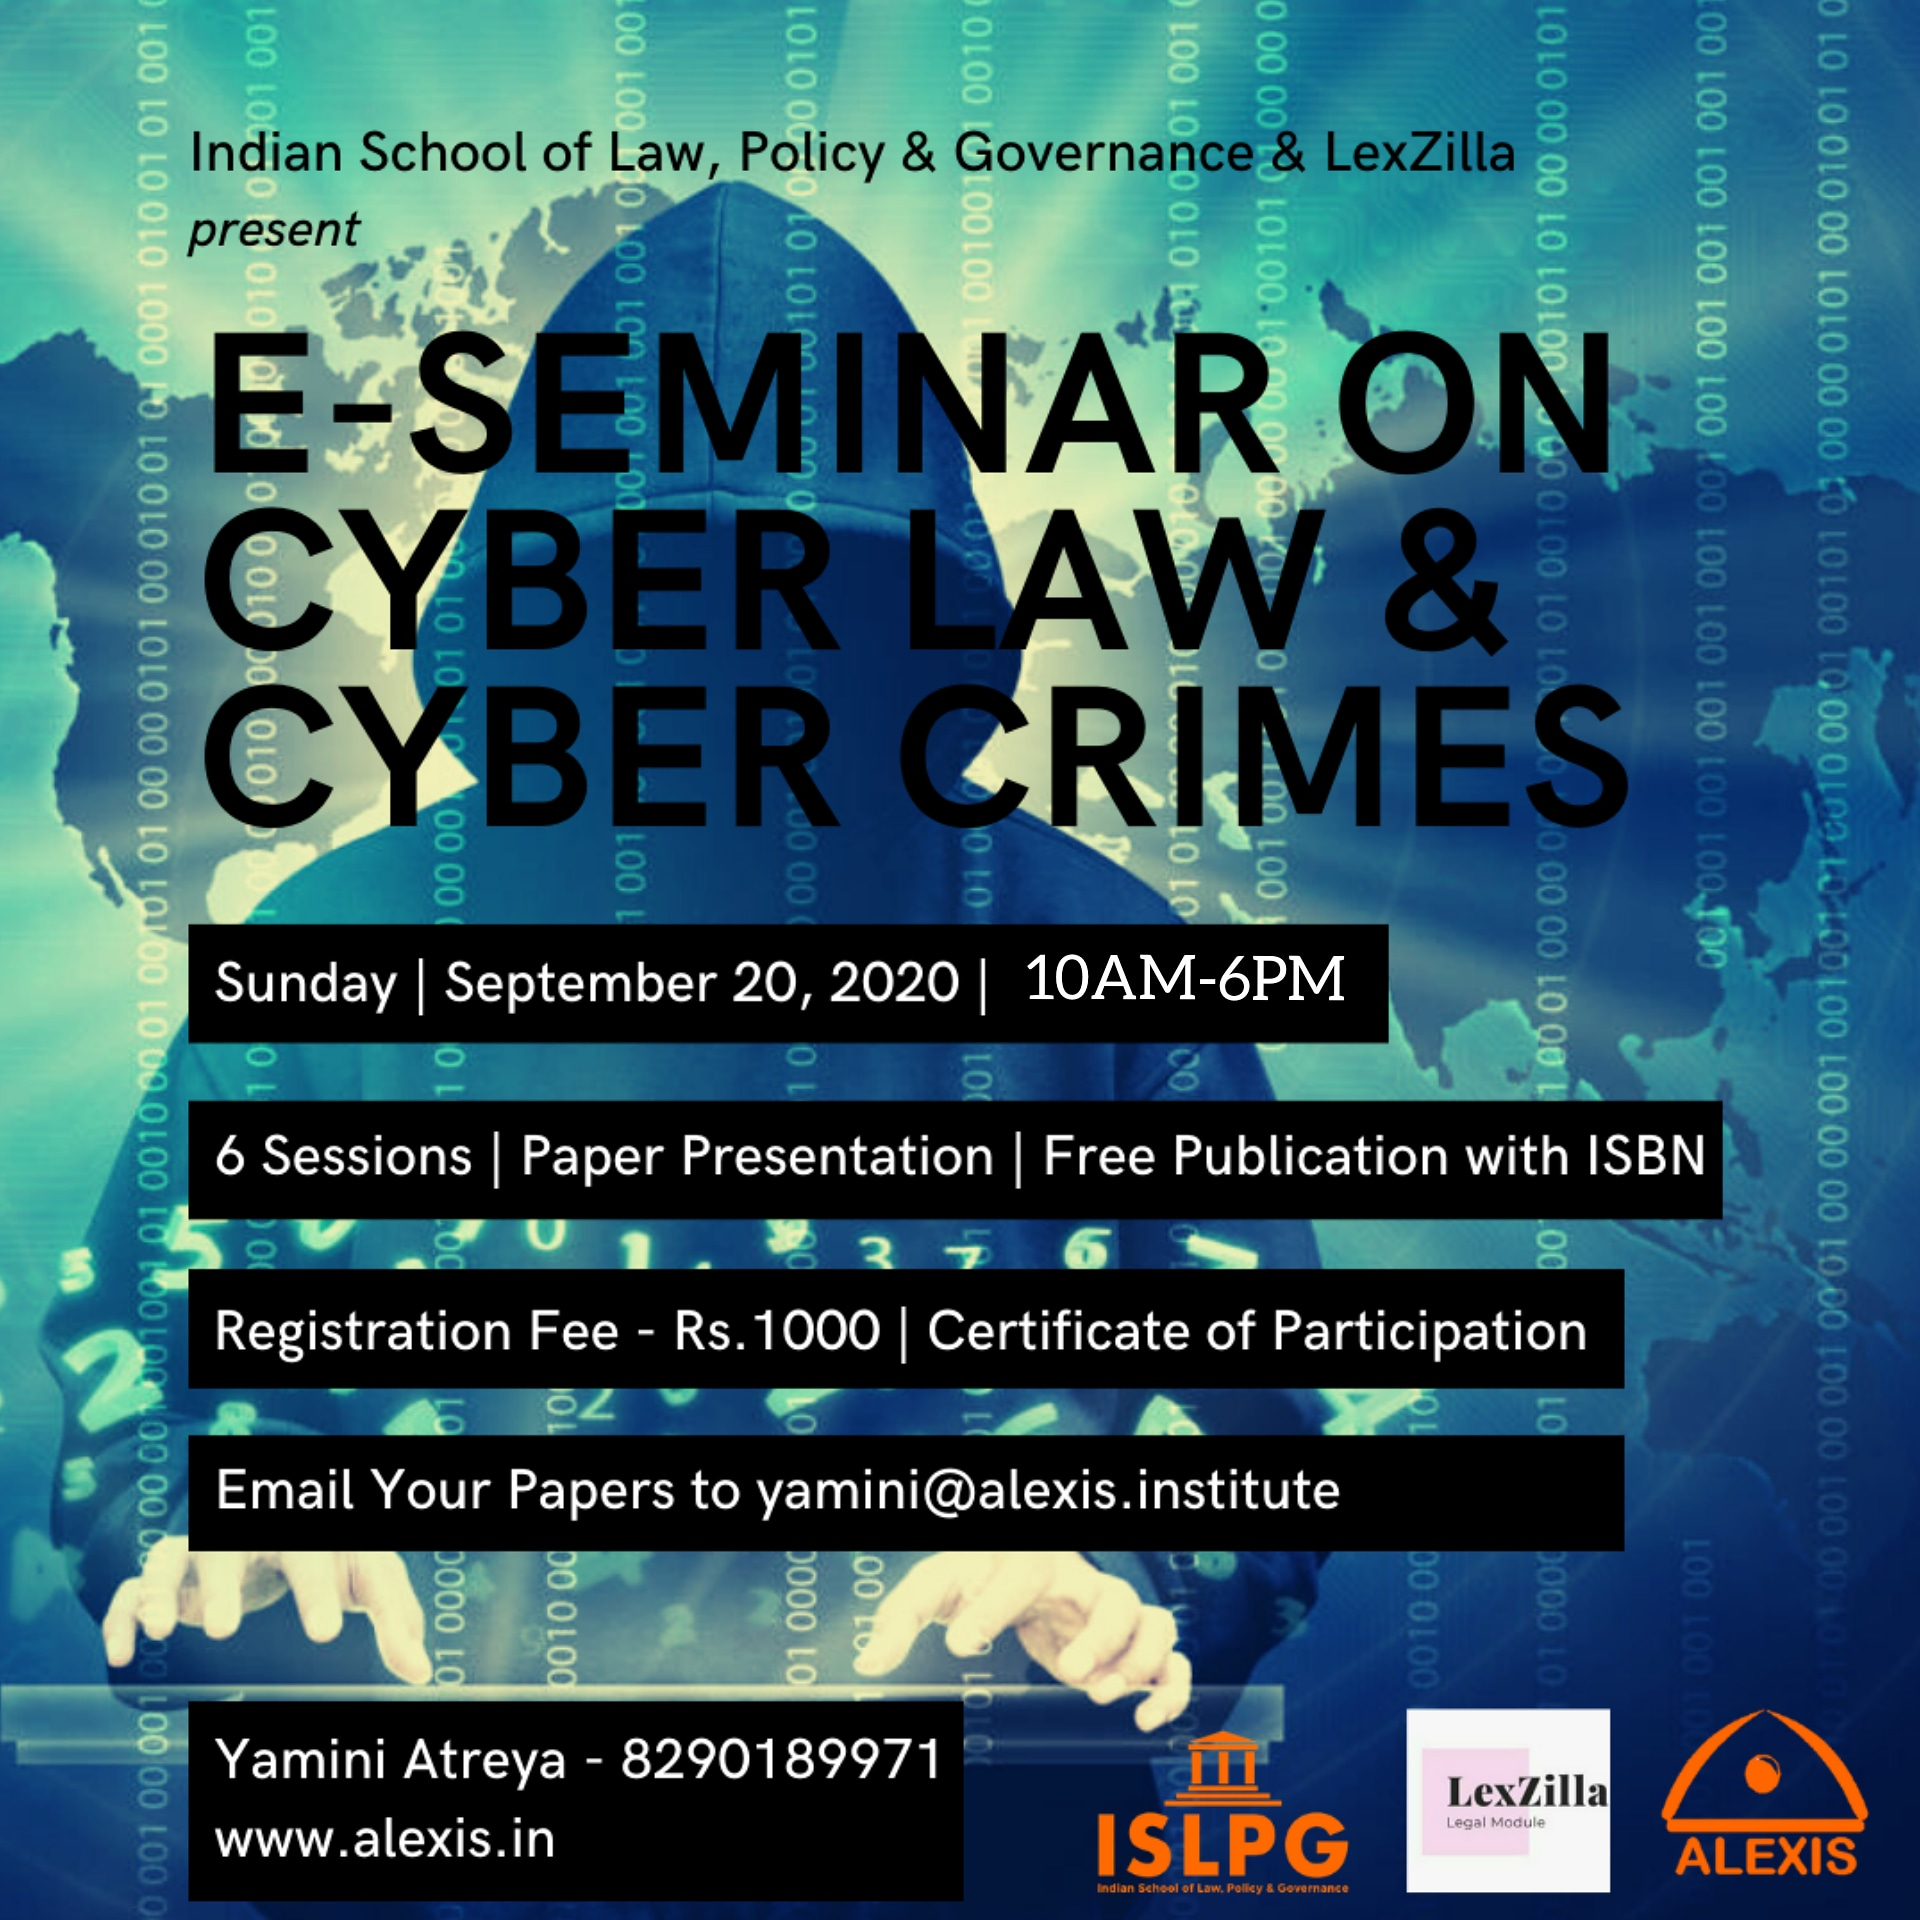 Indian School Of Law, Policy And Governance Presents National E-Seminar On Cyber Law And Cyber Crimes In Association With LexZilla